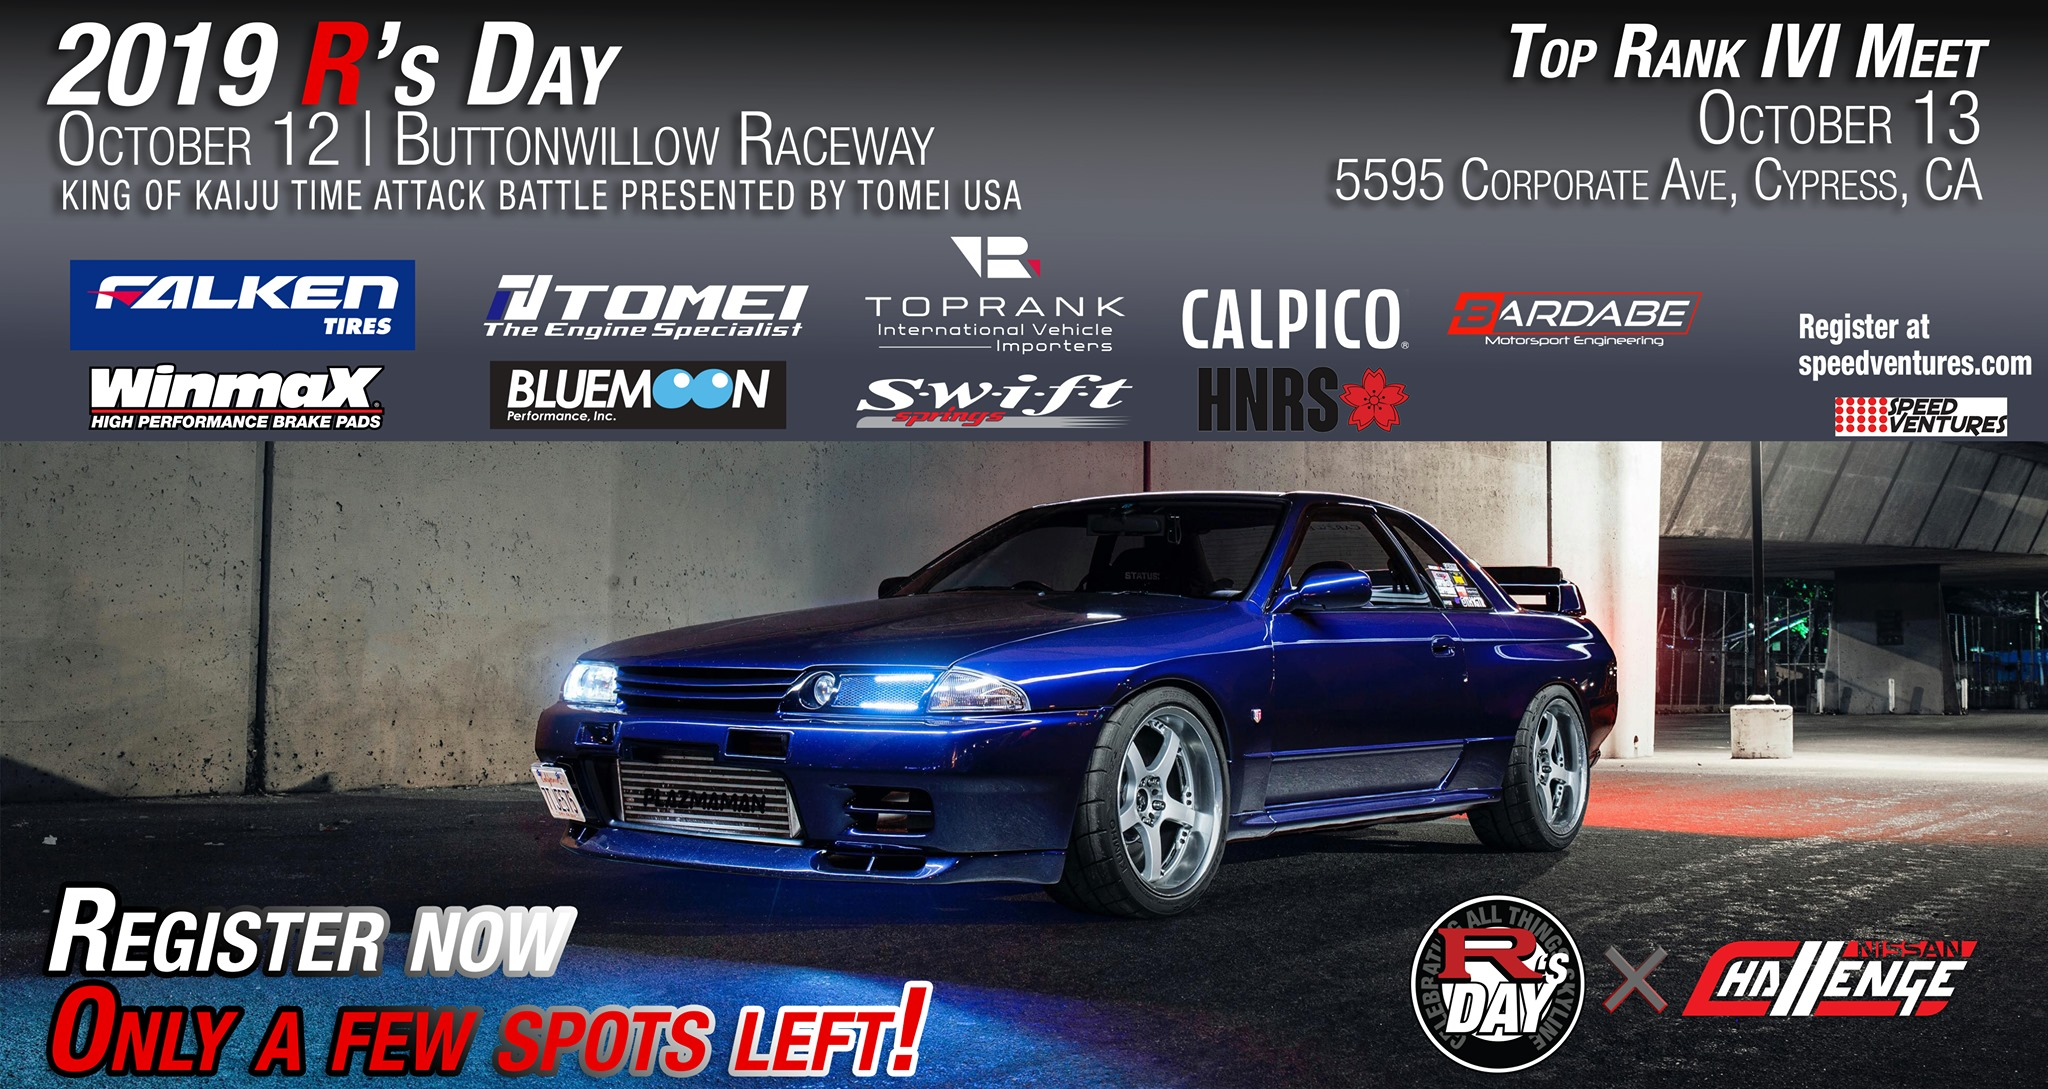 R's Day 2019 - Nissan Skyline GT-R